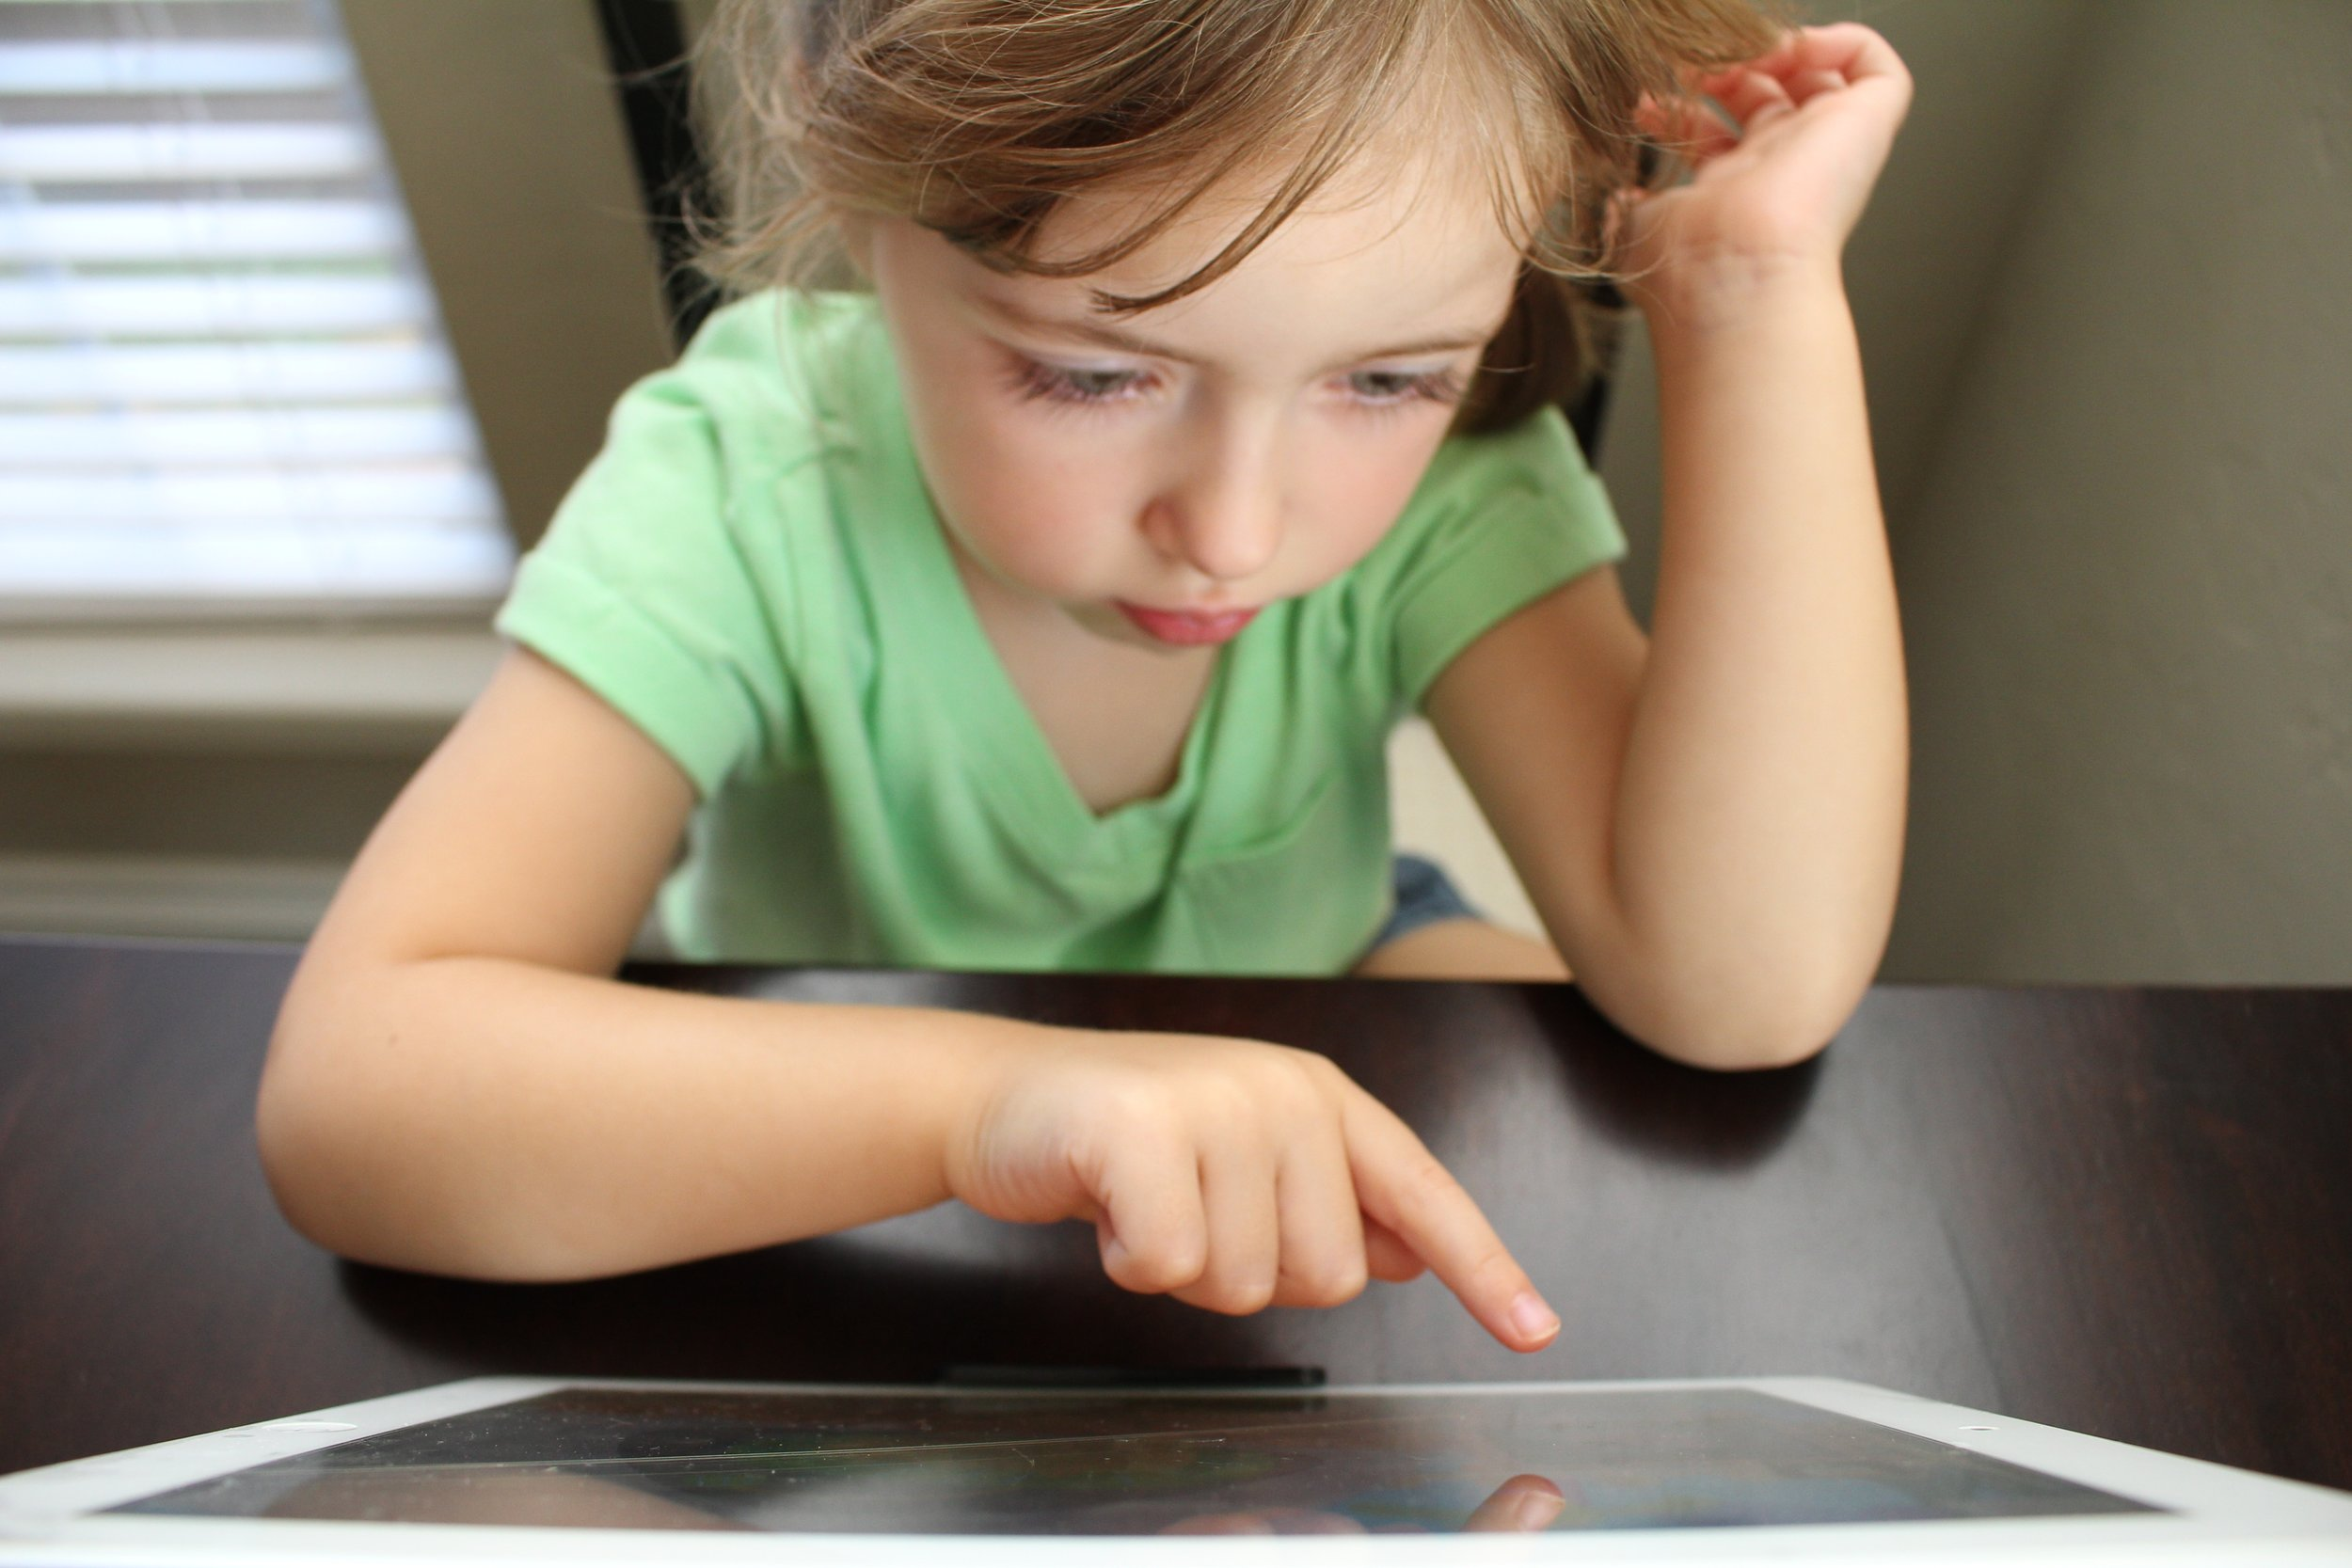 Image: A young girl points to a tablet screen as she is seated at a table. (Source: https://bit.ly/2UgPe8W)